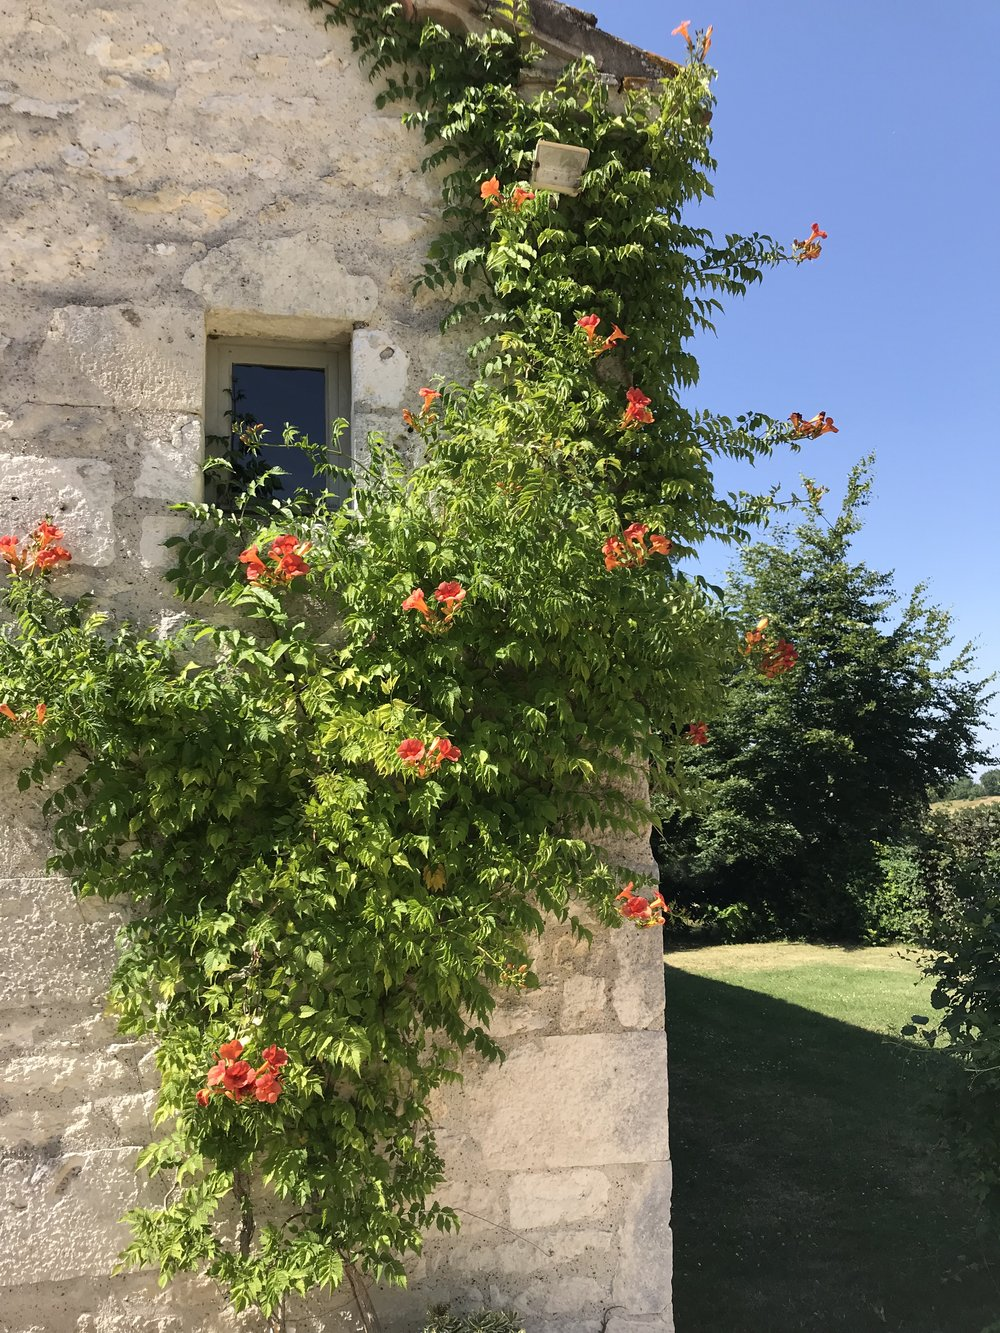 The Campsis or trumpet vine has beautiful orange flowers this year.